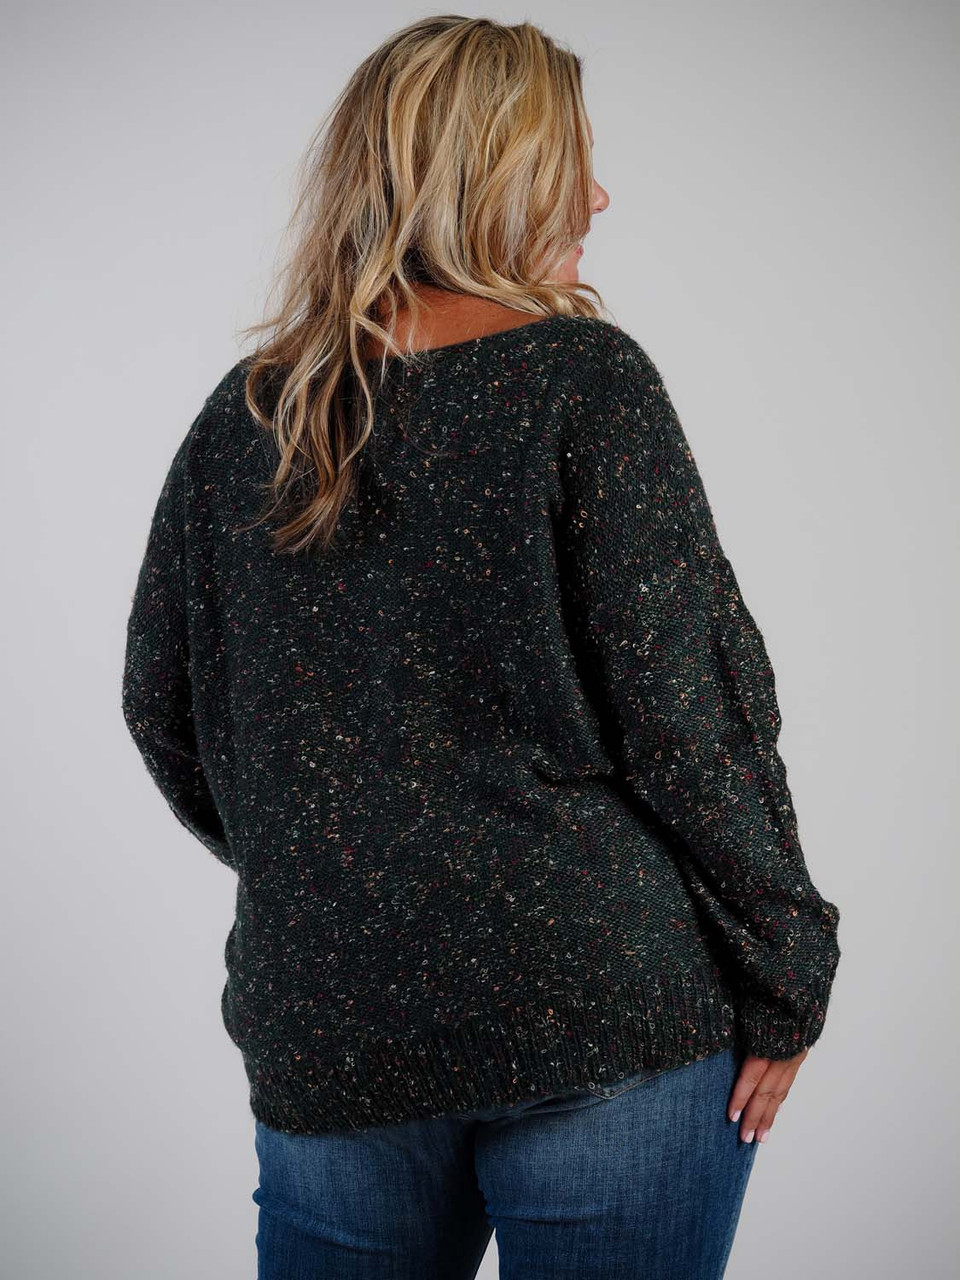 Green multicolor confetti sweater Molly Bracken